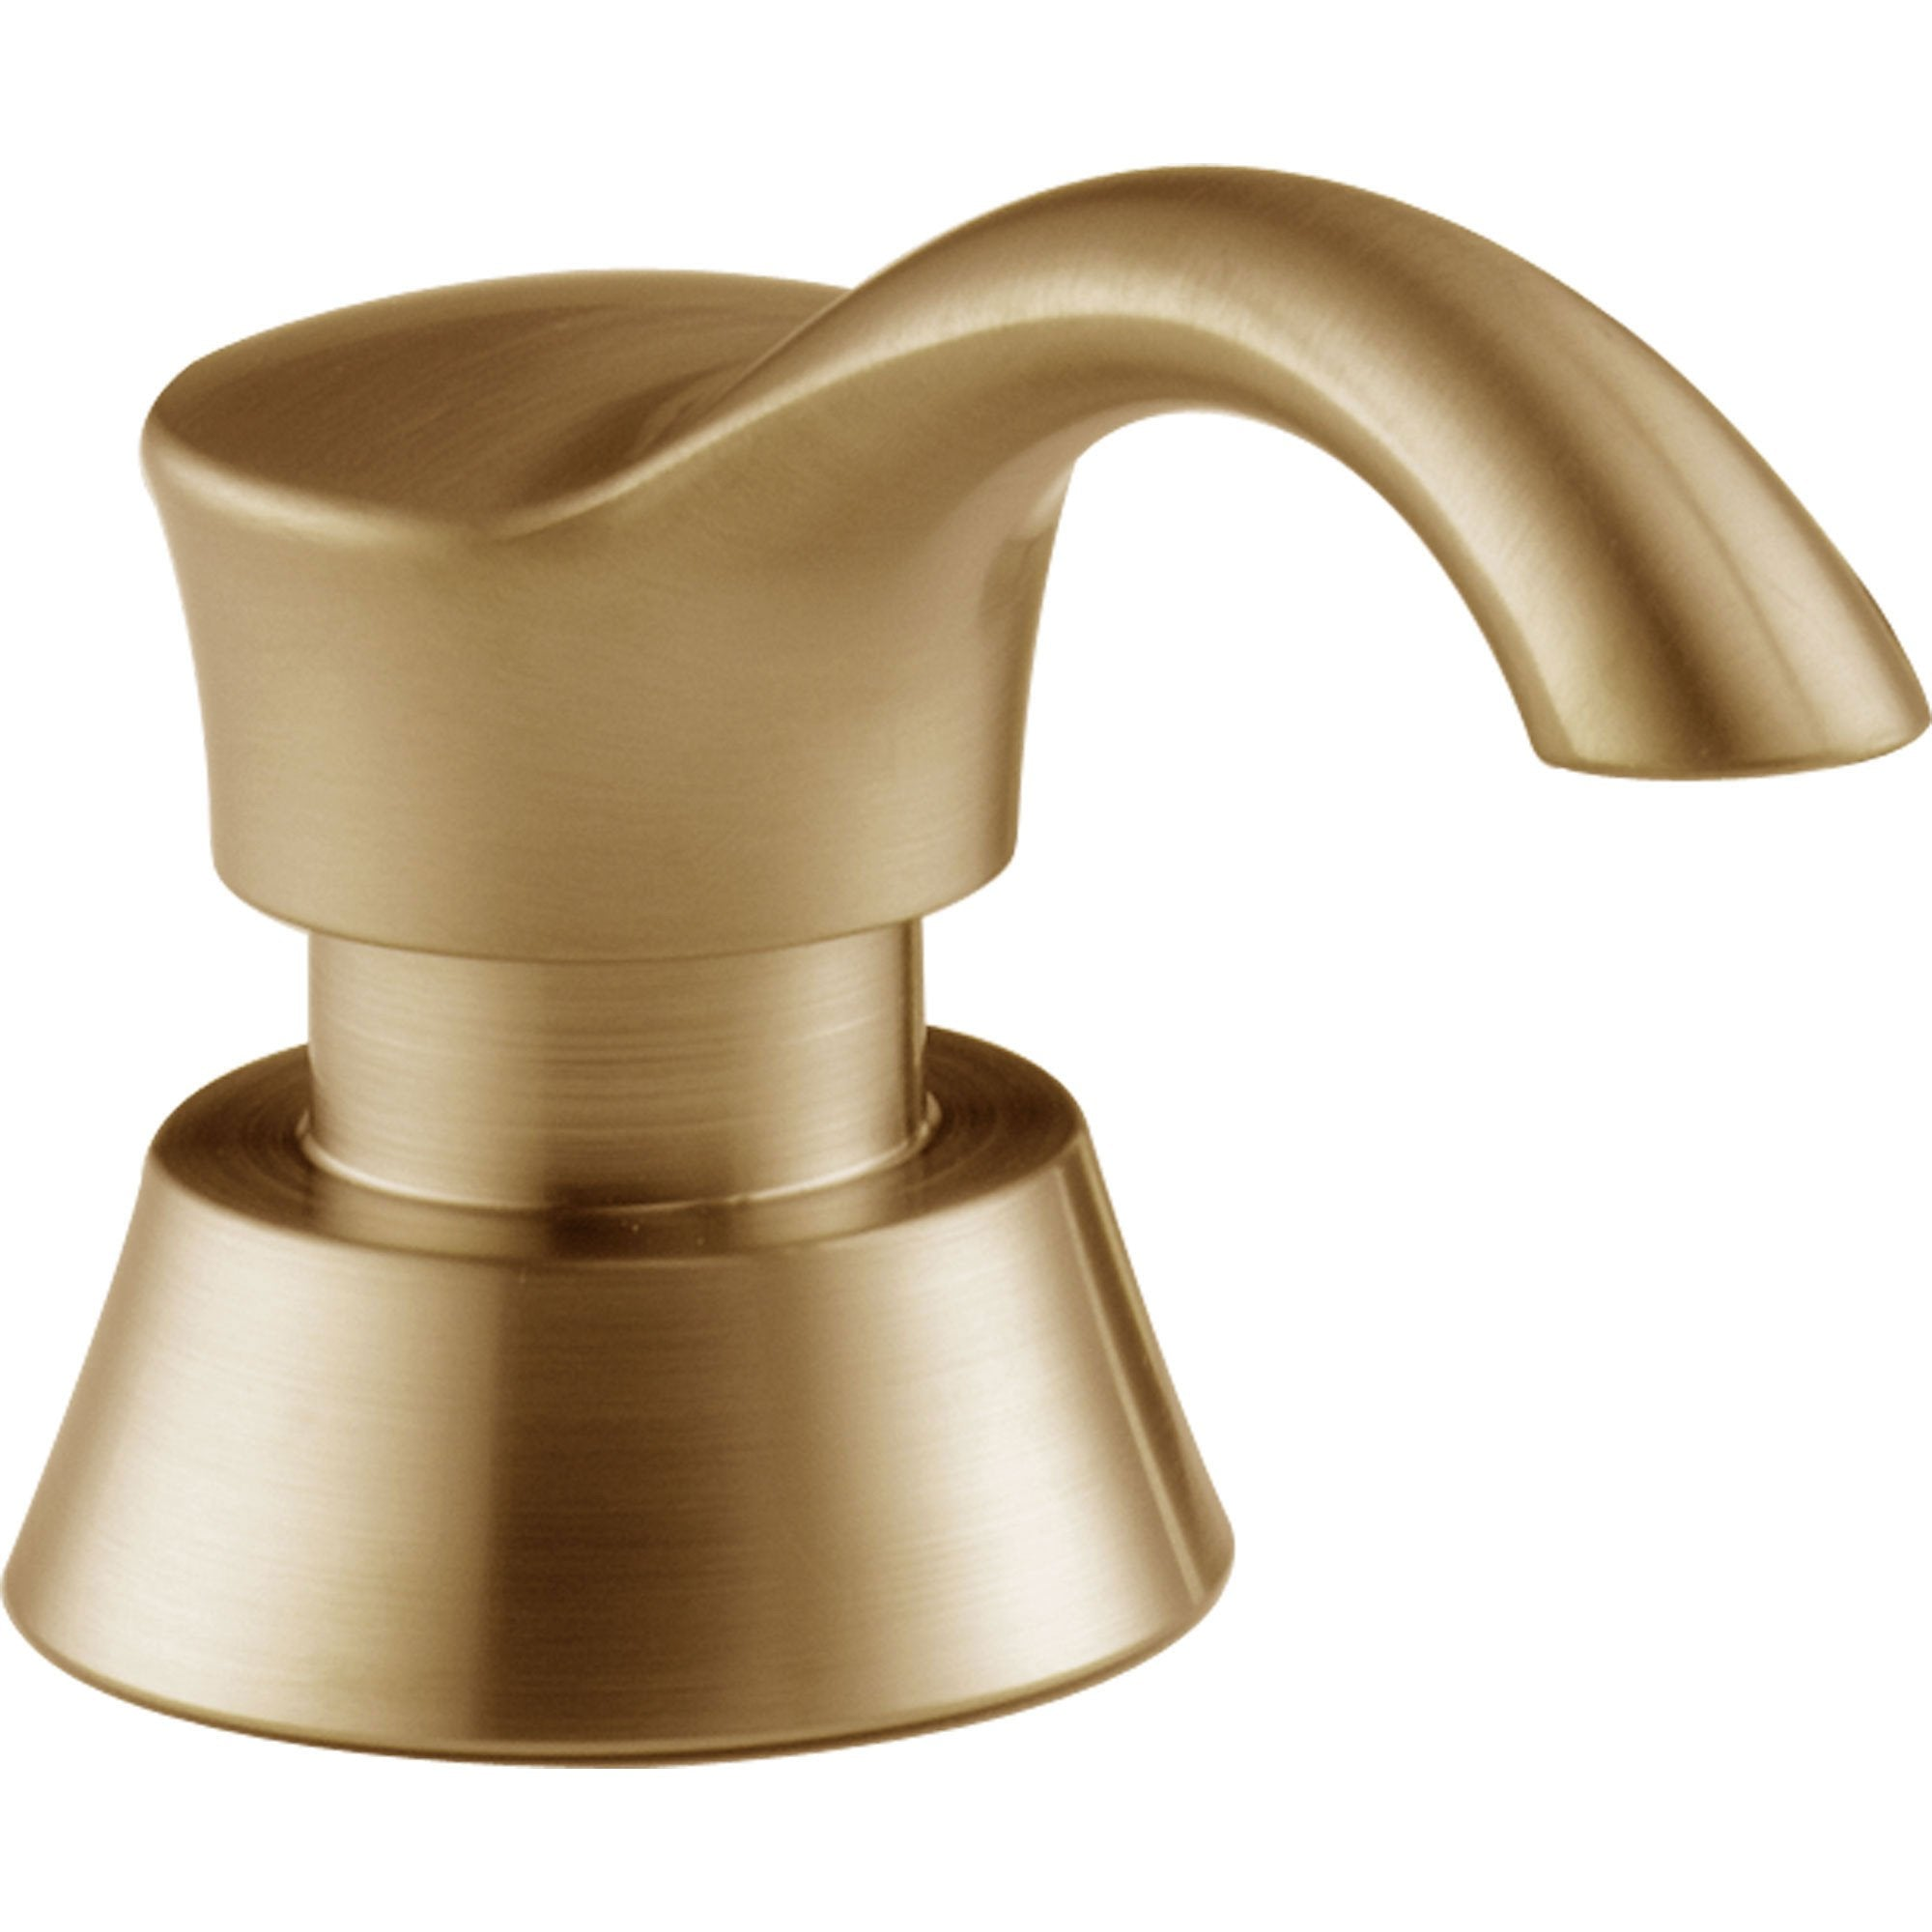 Delta Pilar Modern Champagne Bronze Deck Mount Soap and Lotion Dispenser 555870